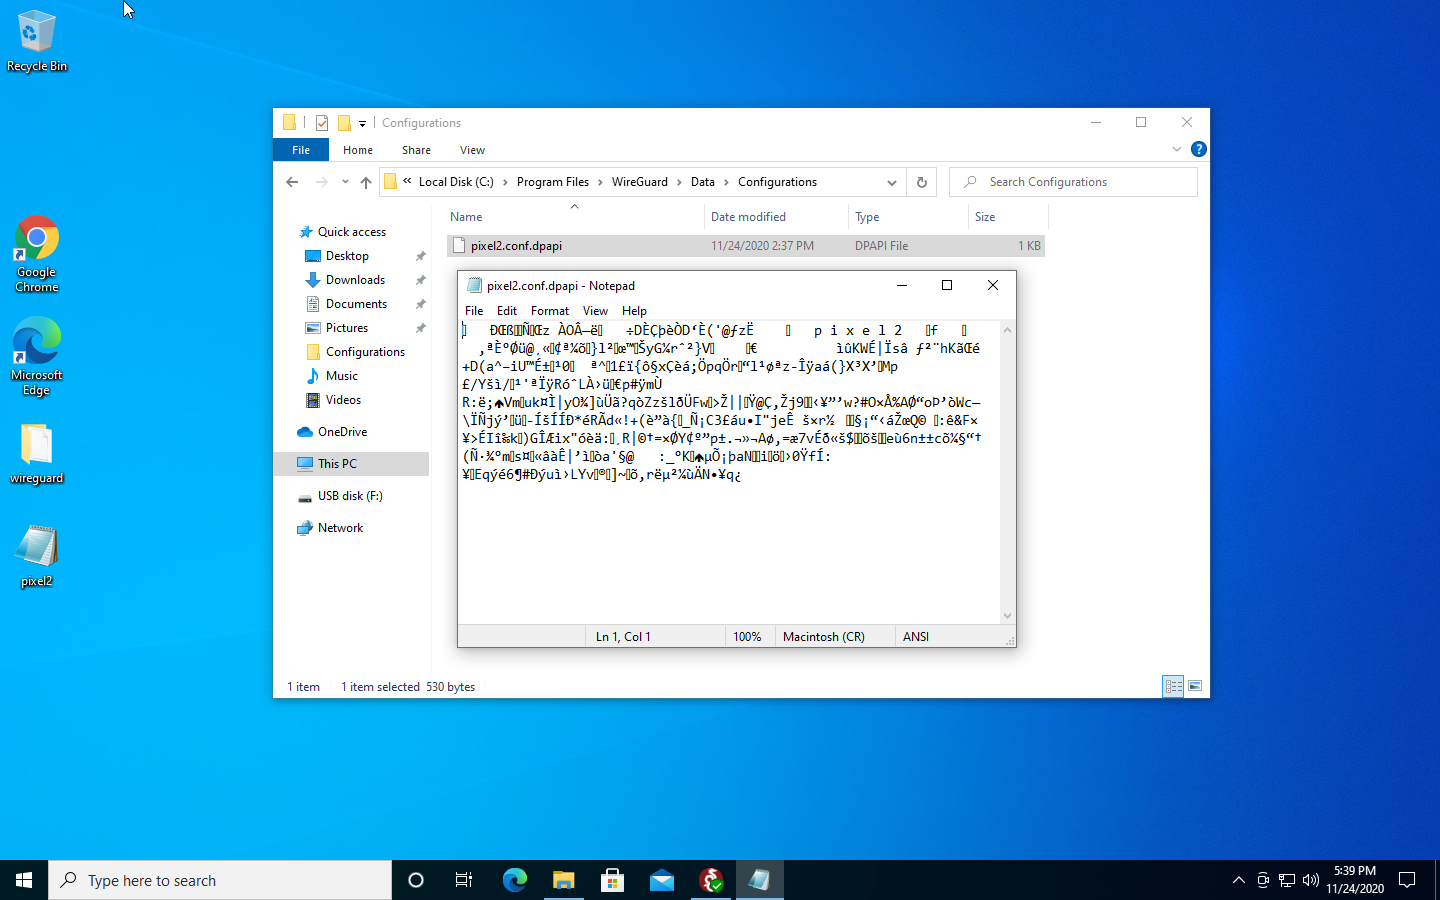 WireGuard used to store its configs under the user directory. Windows 10 really didn't like that, so it's (properly, in our opinion) been moved to a global configuration directory at C:Program FilesWireGuardDataConfigurations.